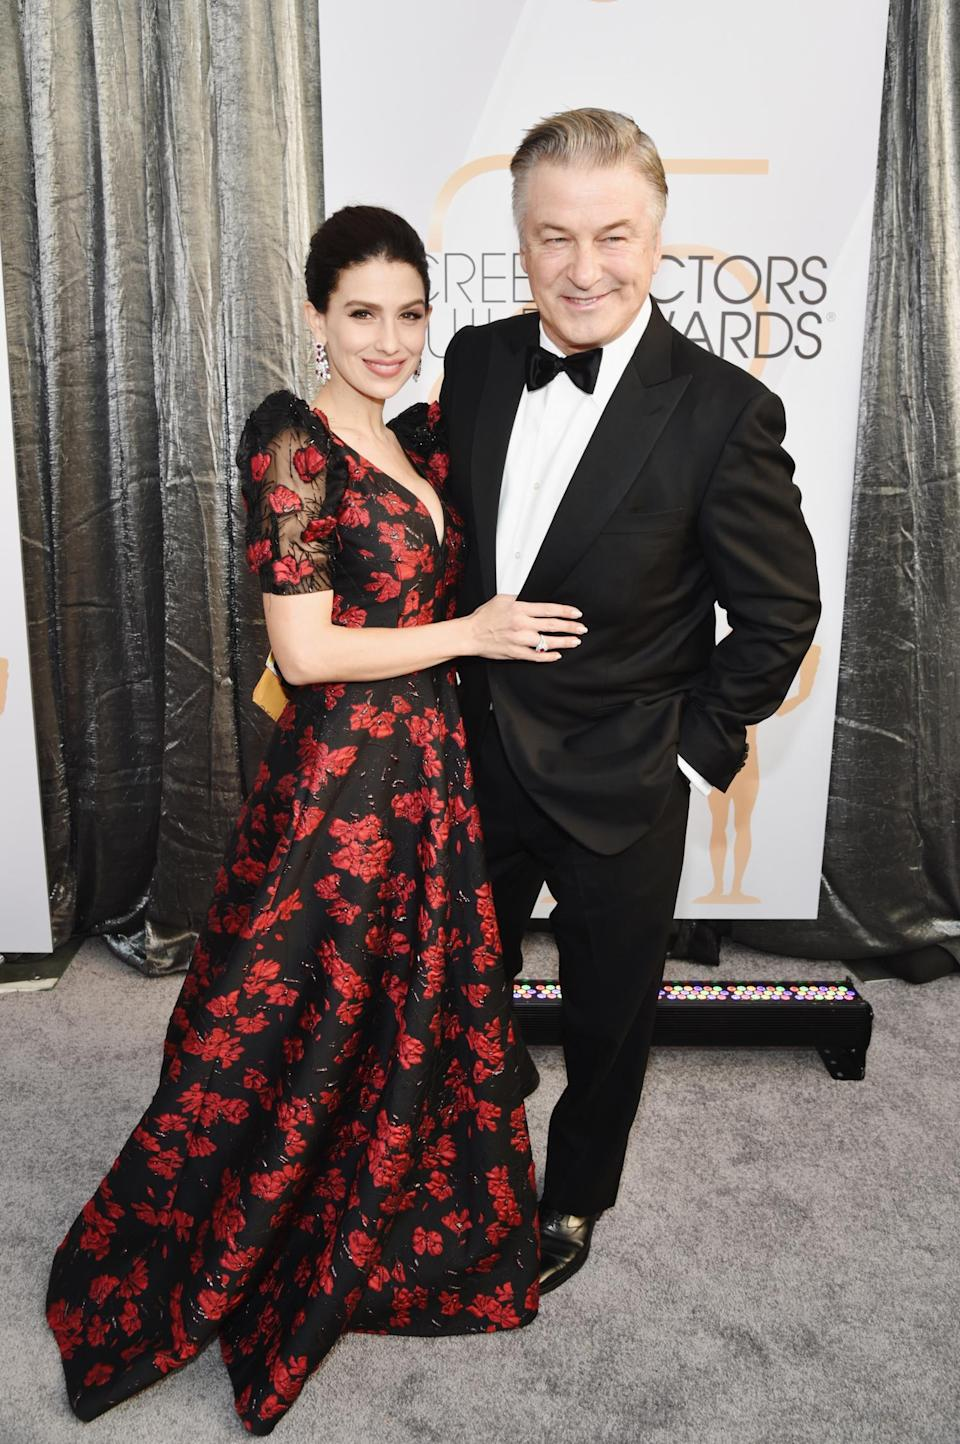 <p>Parents night out! Alec and Hilaria Baldwin looked relaxed at the 2019 Screen Actors Guild Awards. (Photo: Getty Images) </p>